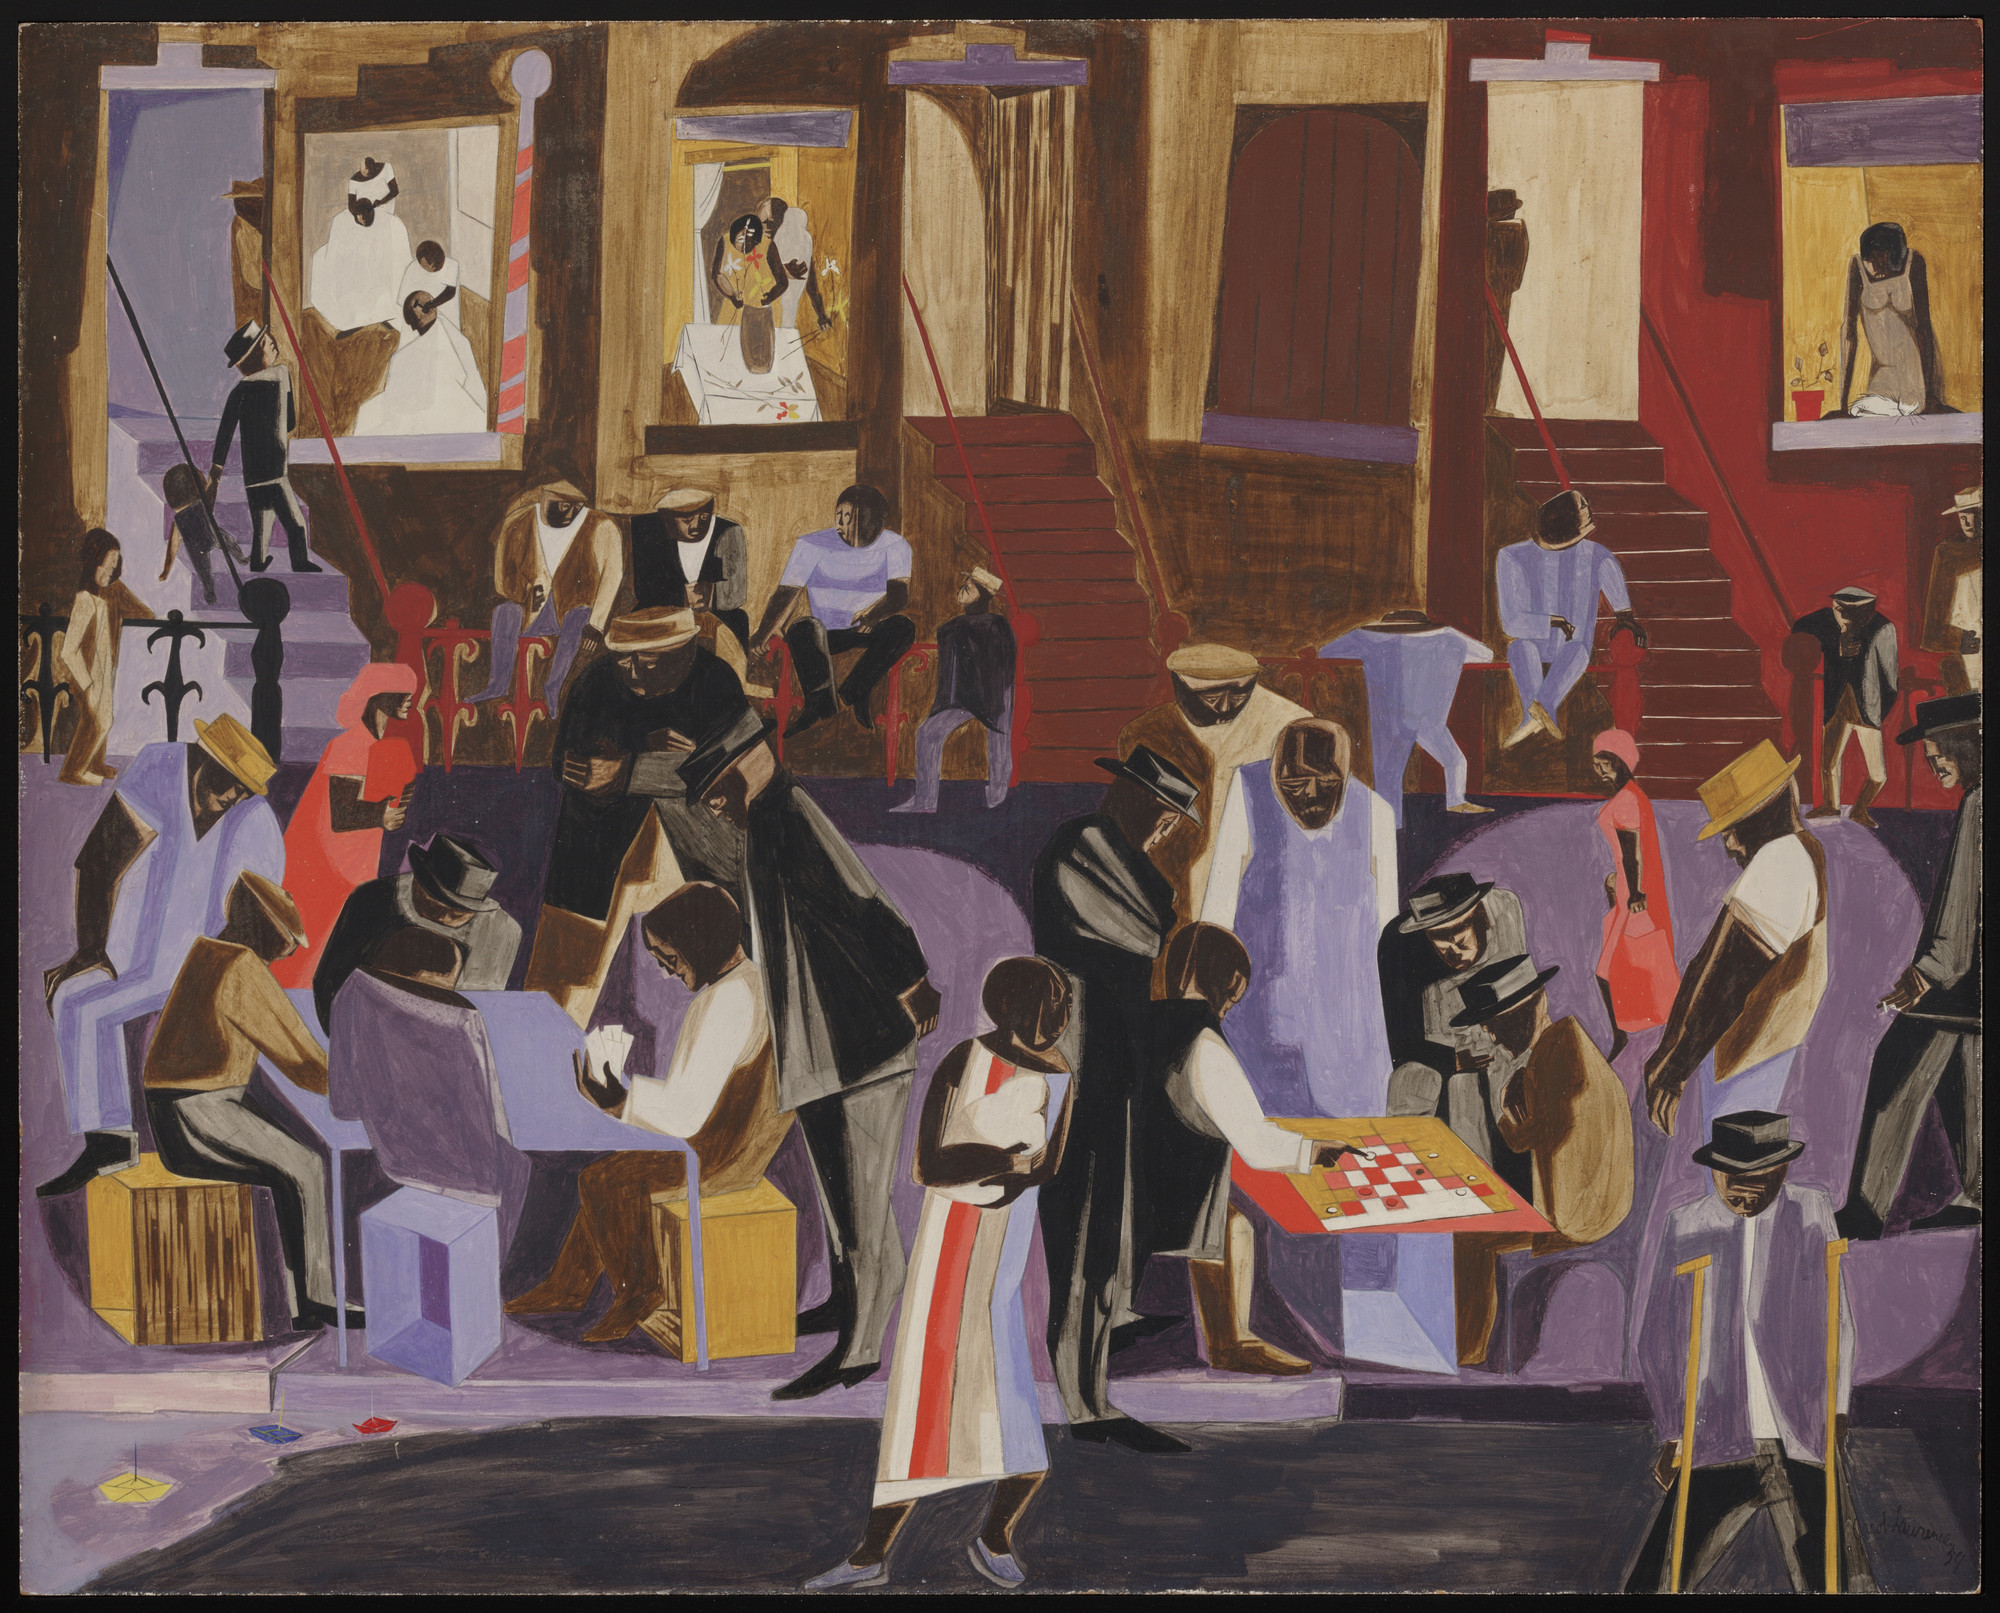 Jacob Lawrence. Street Shadows. 1959